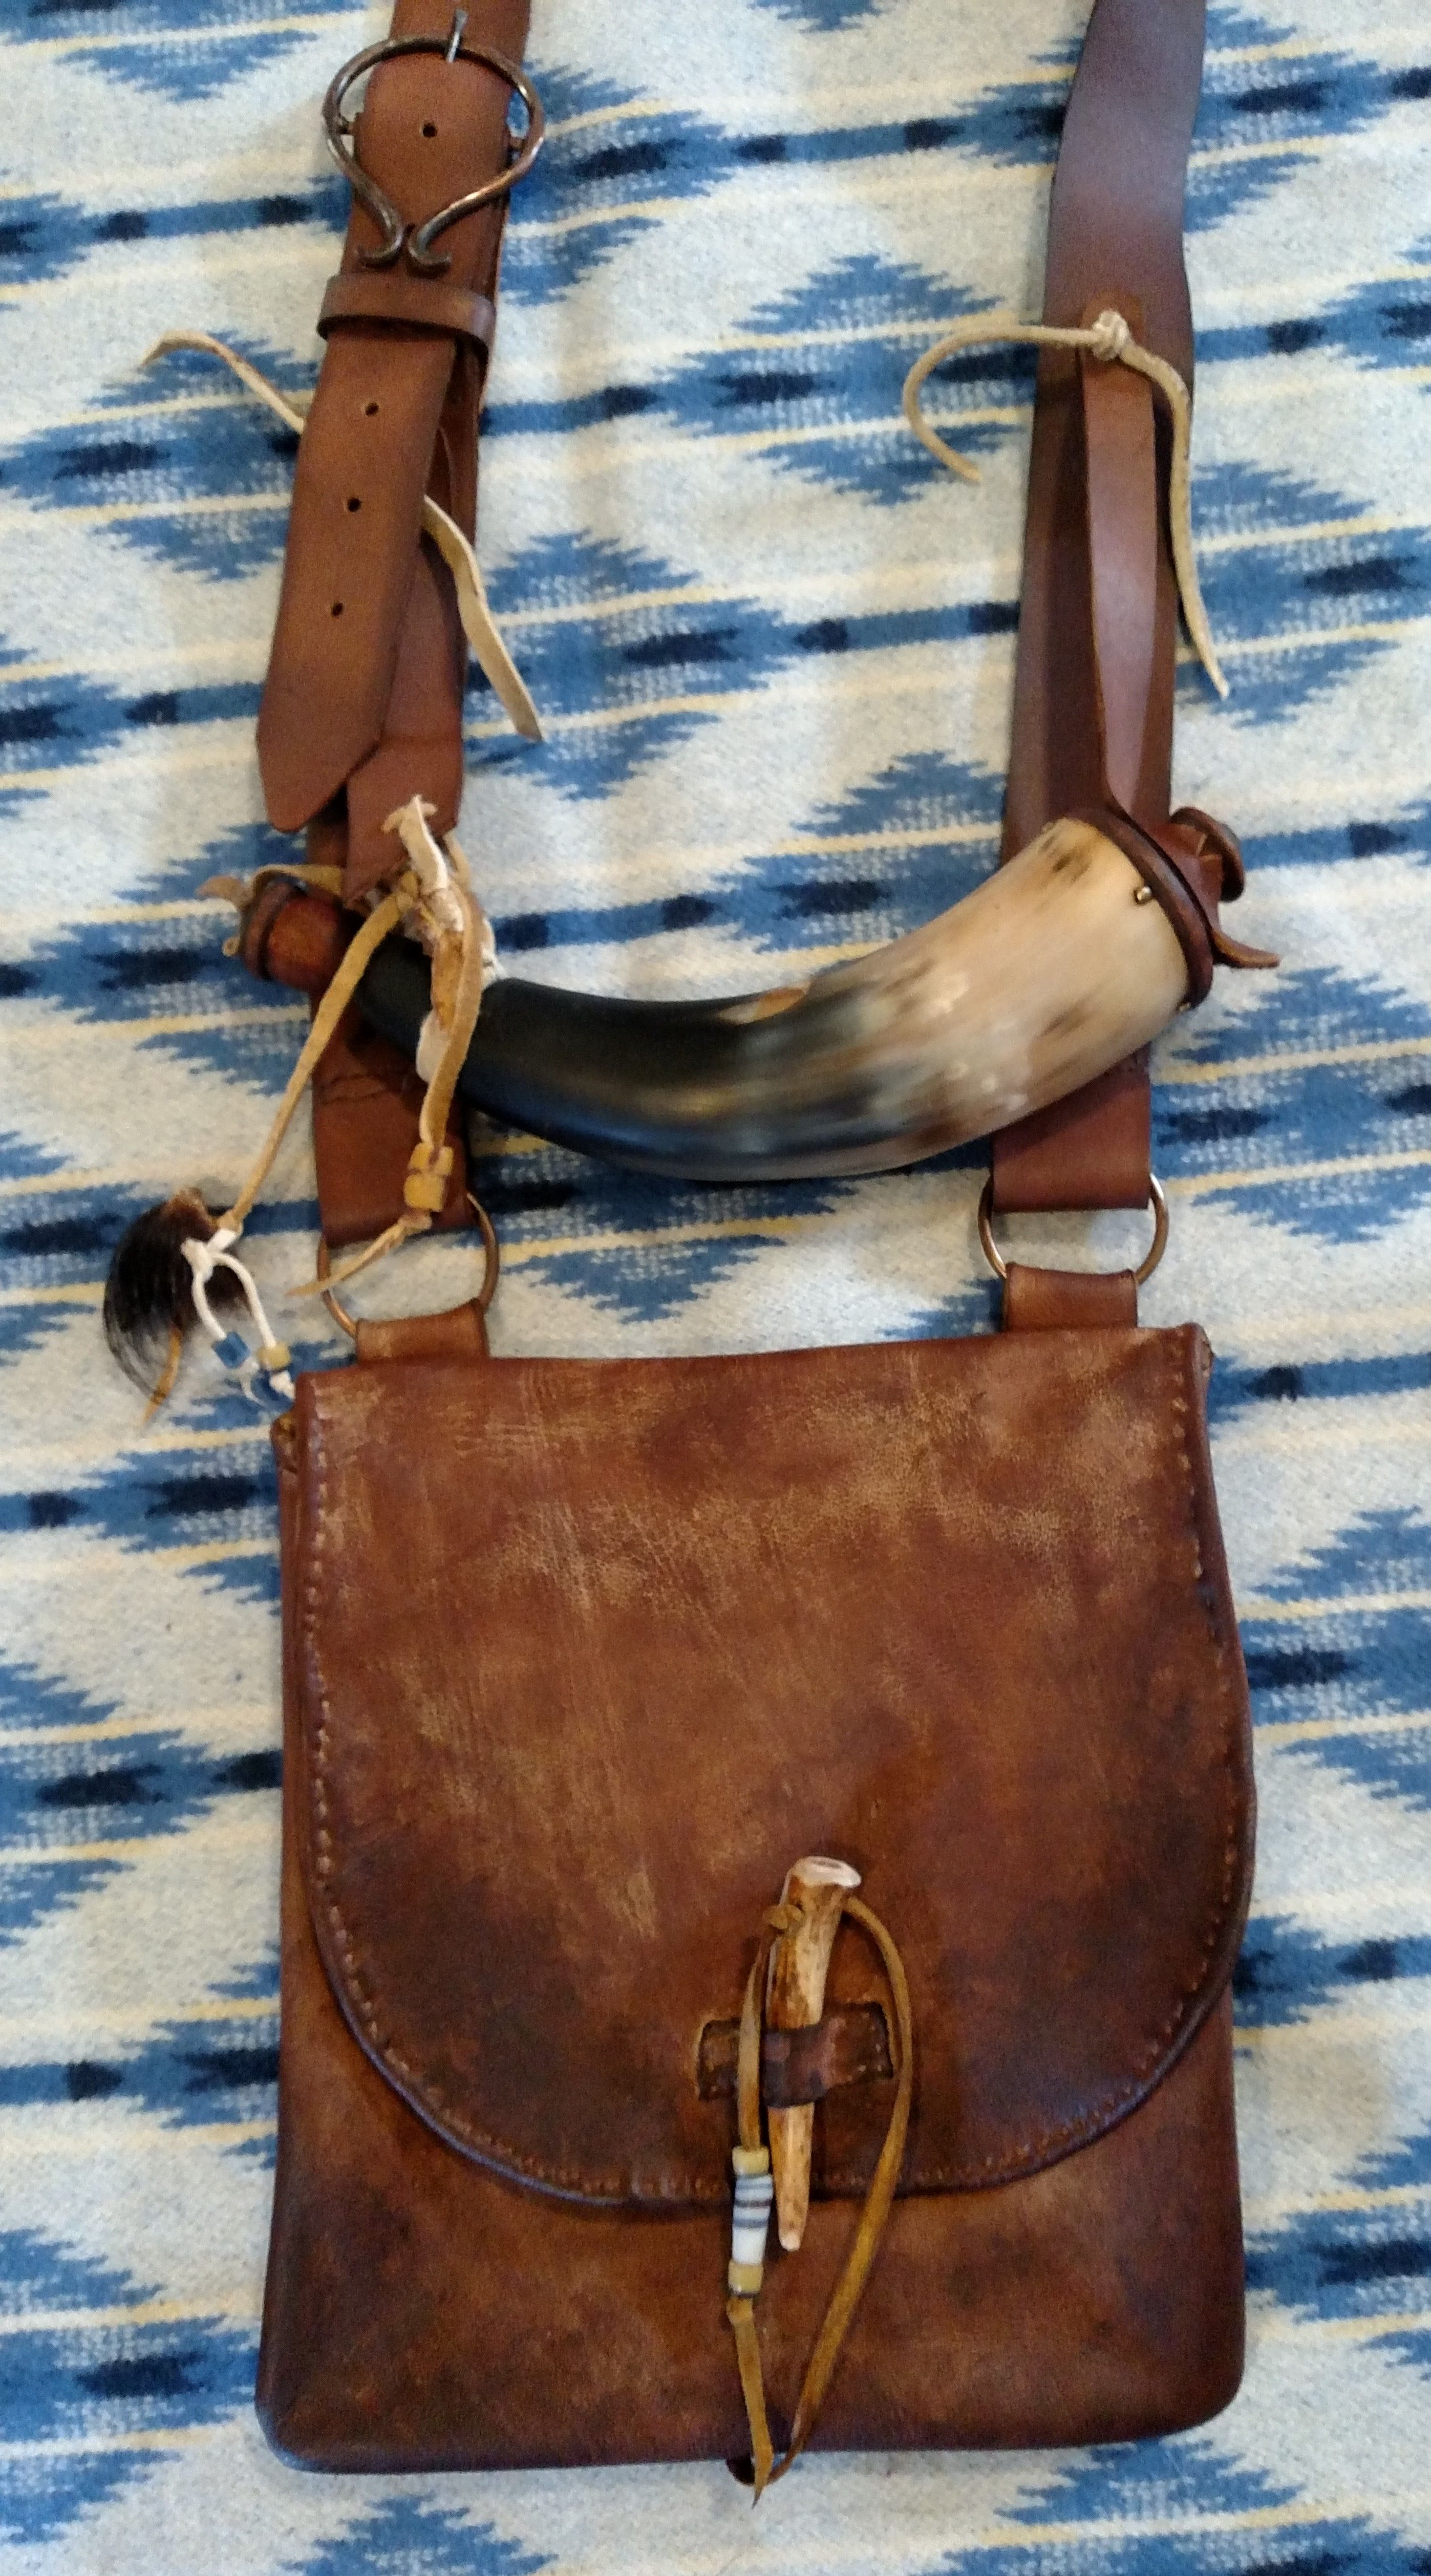 f66ecdc6d7b0 Primitive Mountain Man Possibles Bag with Powder Horn by Miss Tudy  https://www